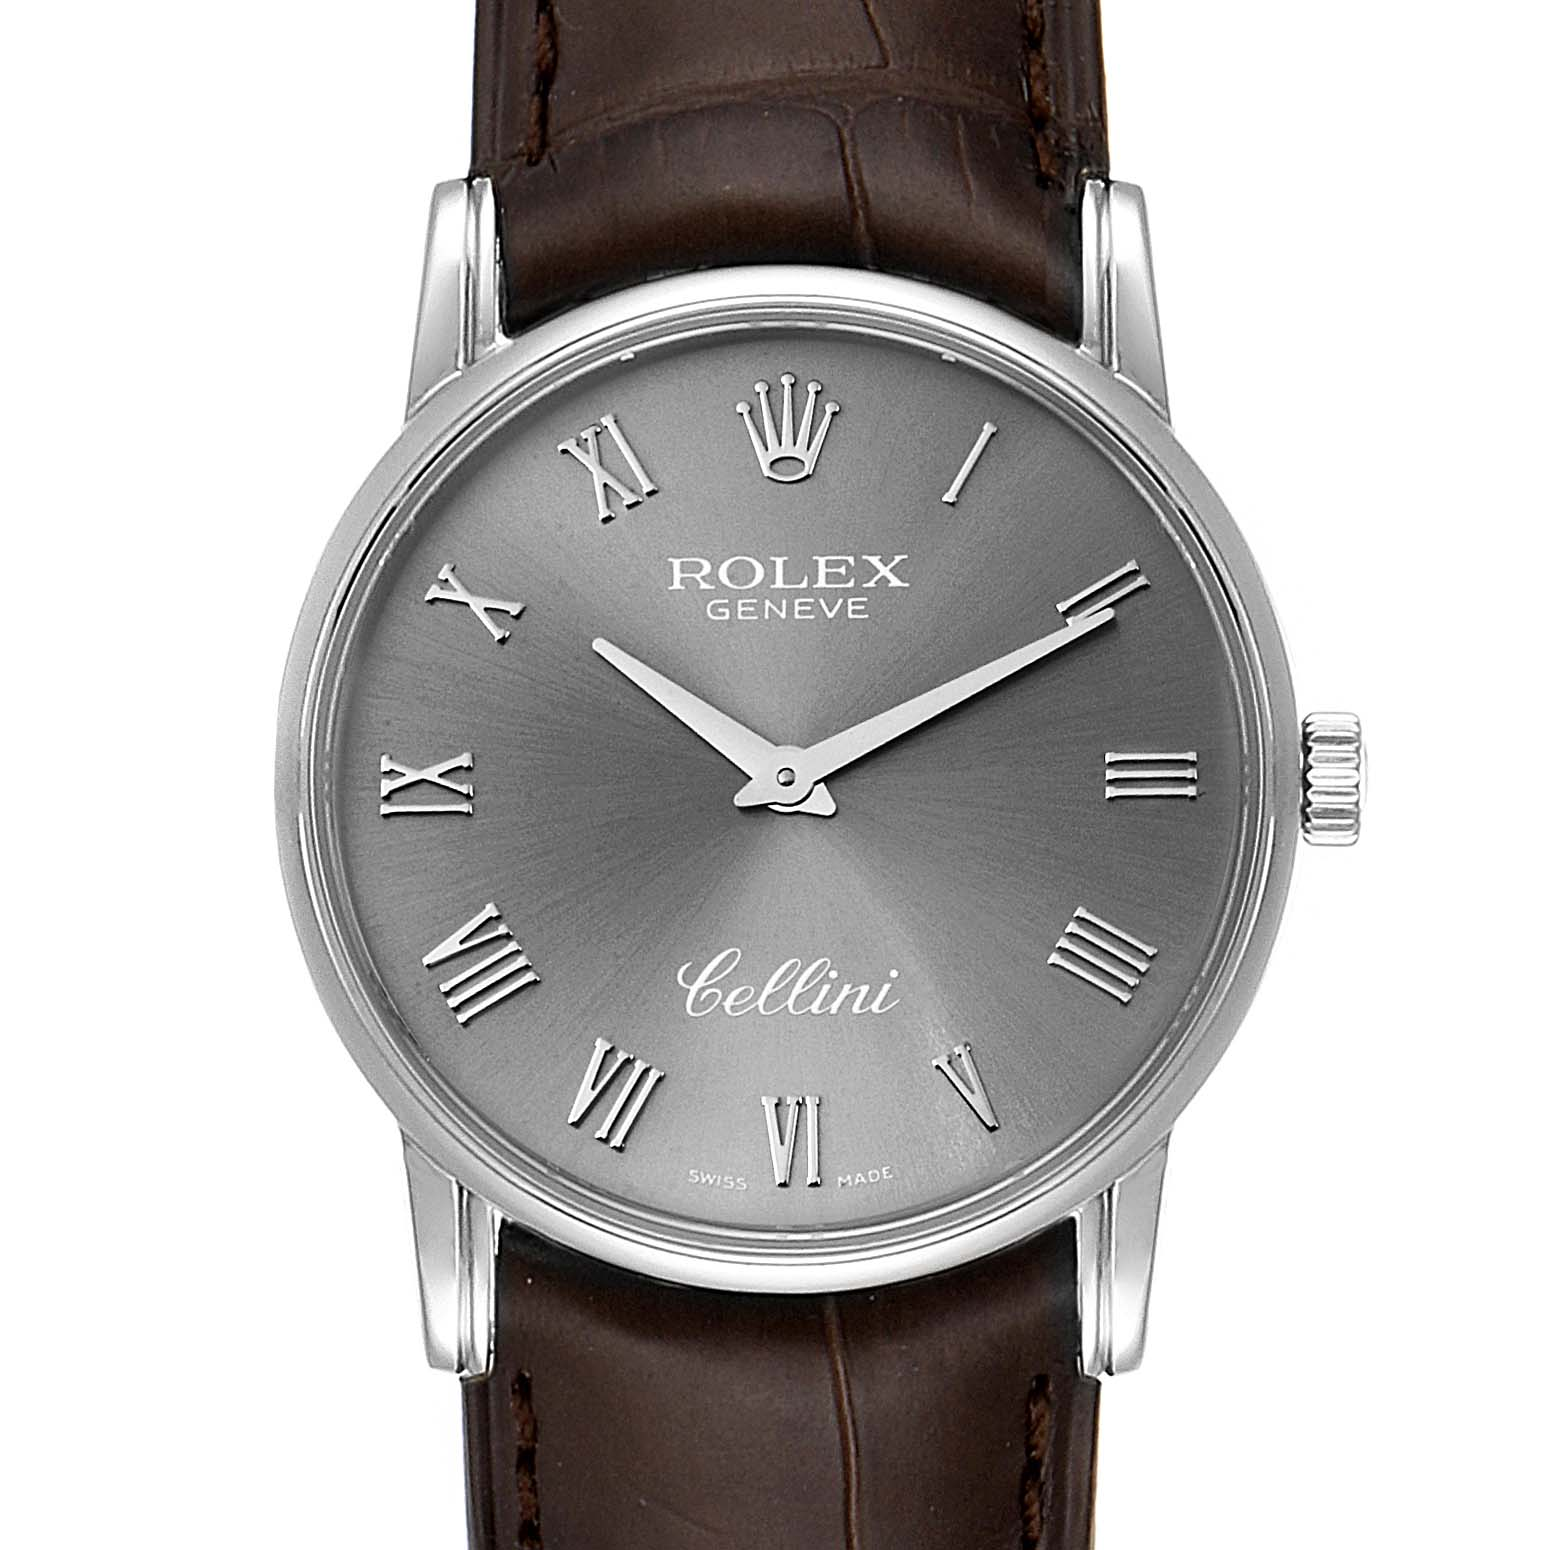 Photo of Rolex Cellini Classic Slate Dial 18k White Gold Mens Watch 5116